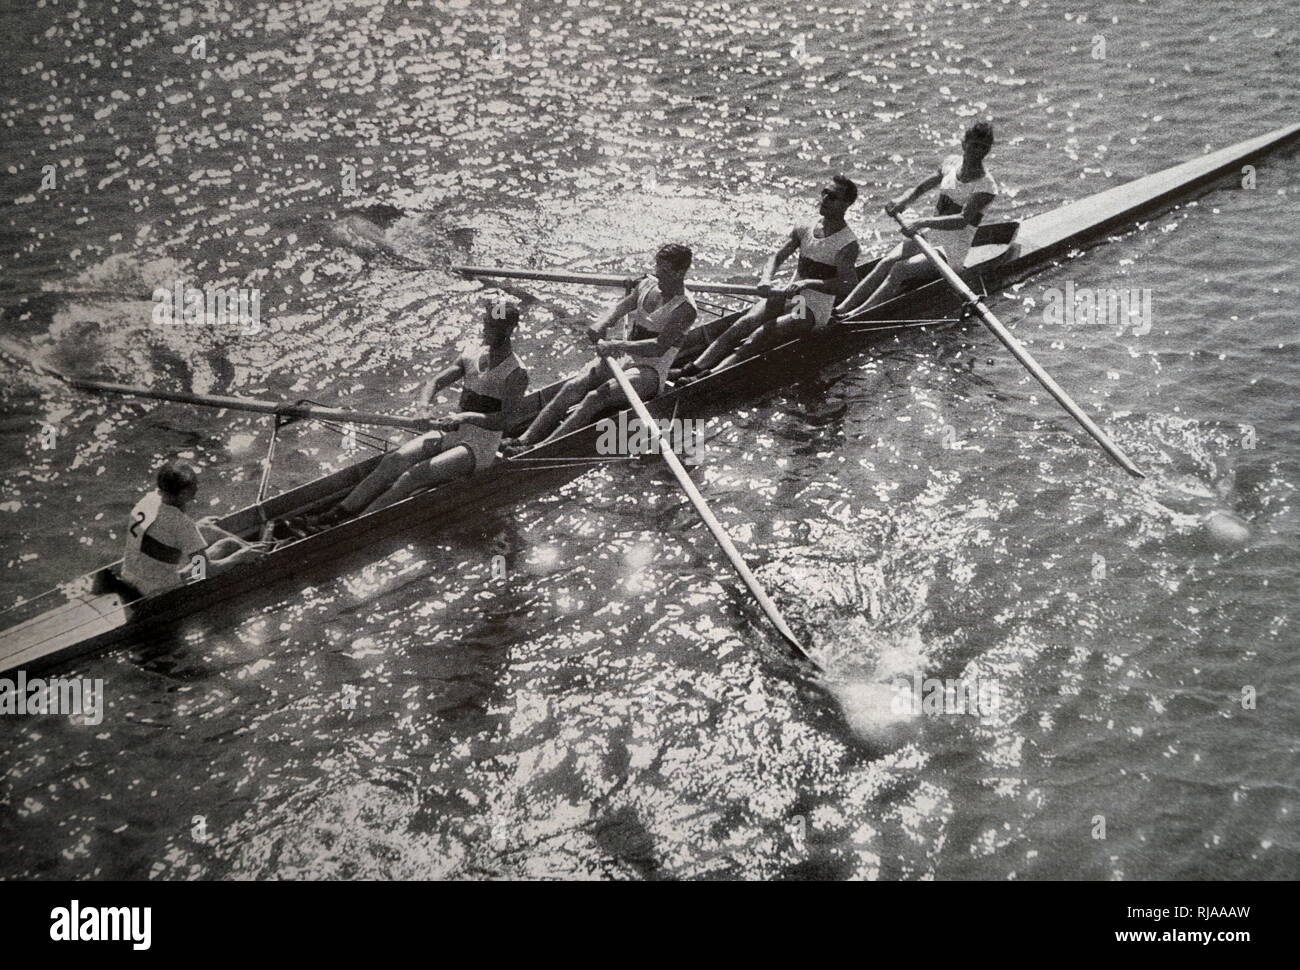 Photograph of the German Coxed four team in rowing during the 1932 Olympic games. Hans Eller, Horst Hoeck, Walter Meyer, Joachim Spremberg & Carlheinz Neumann. - Stock Image